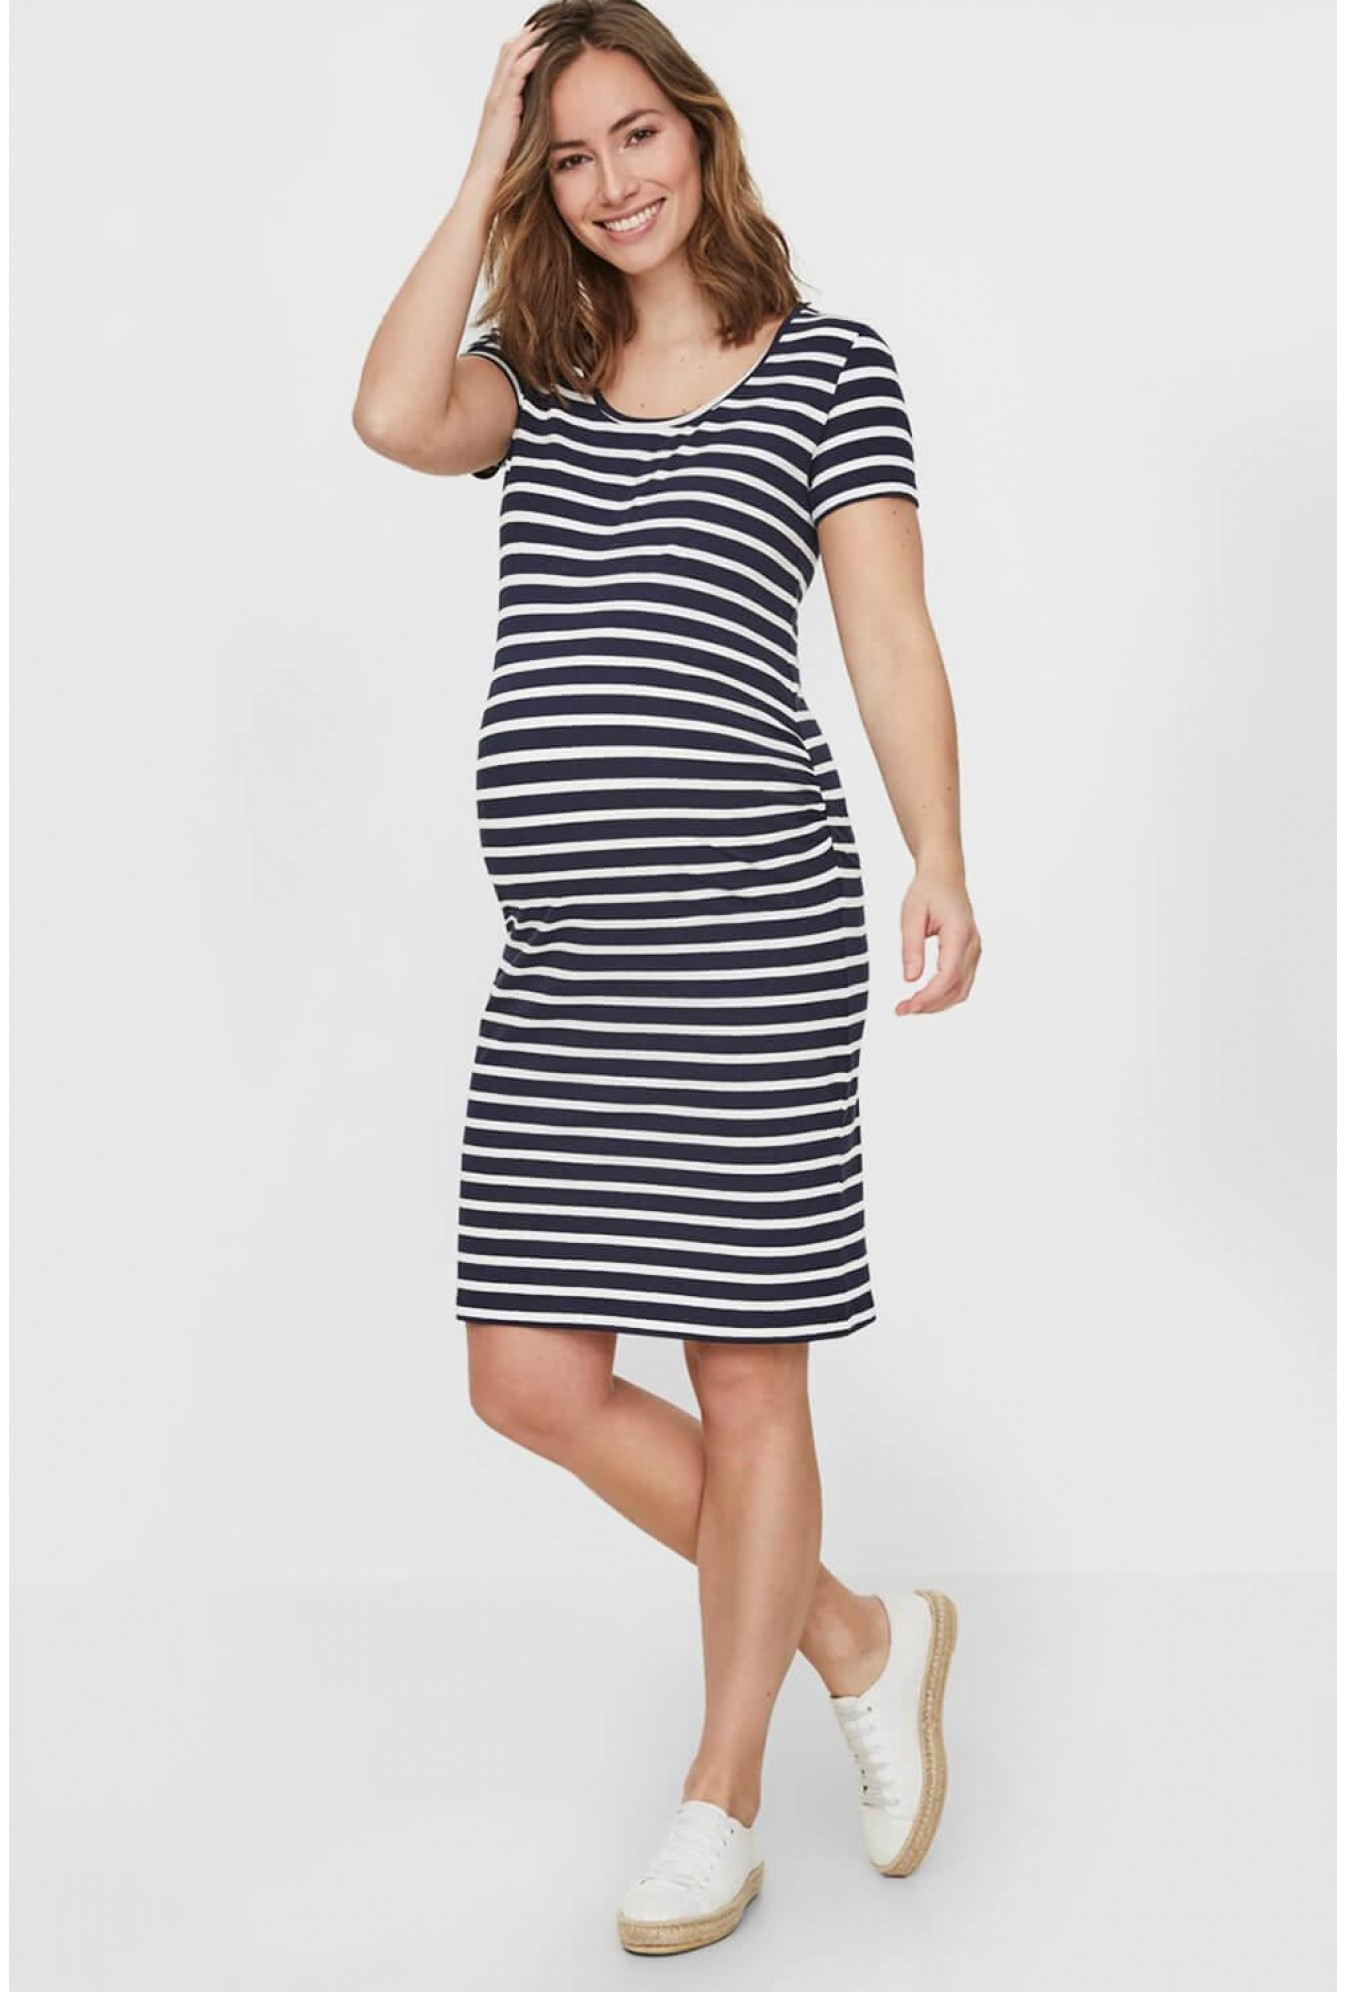 d1ea2d2dbf More Views. Lea Maternity Short Sleeve Dress in Navy Stripe. Mamalicious